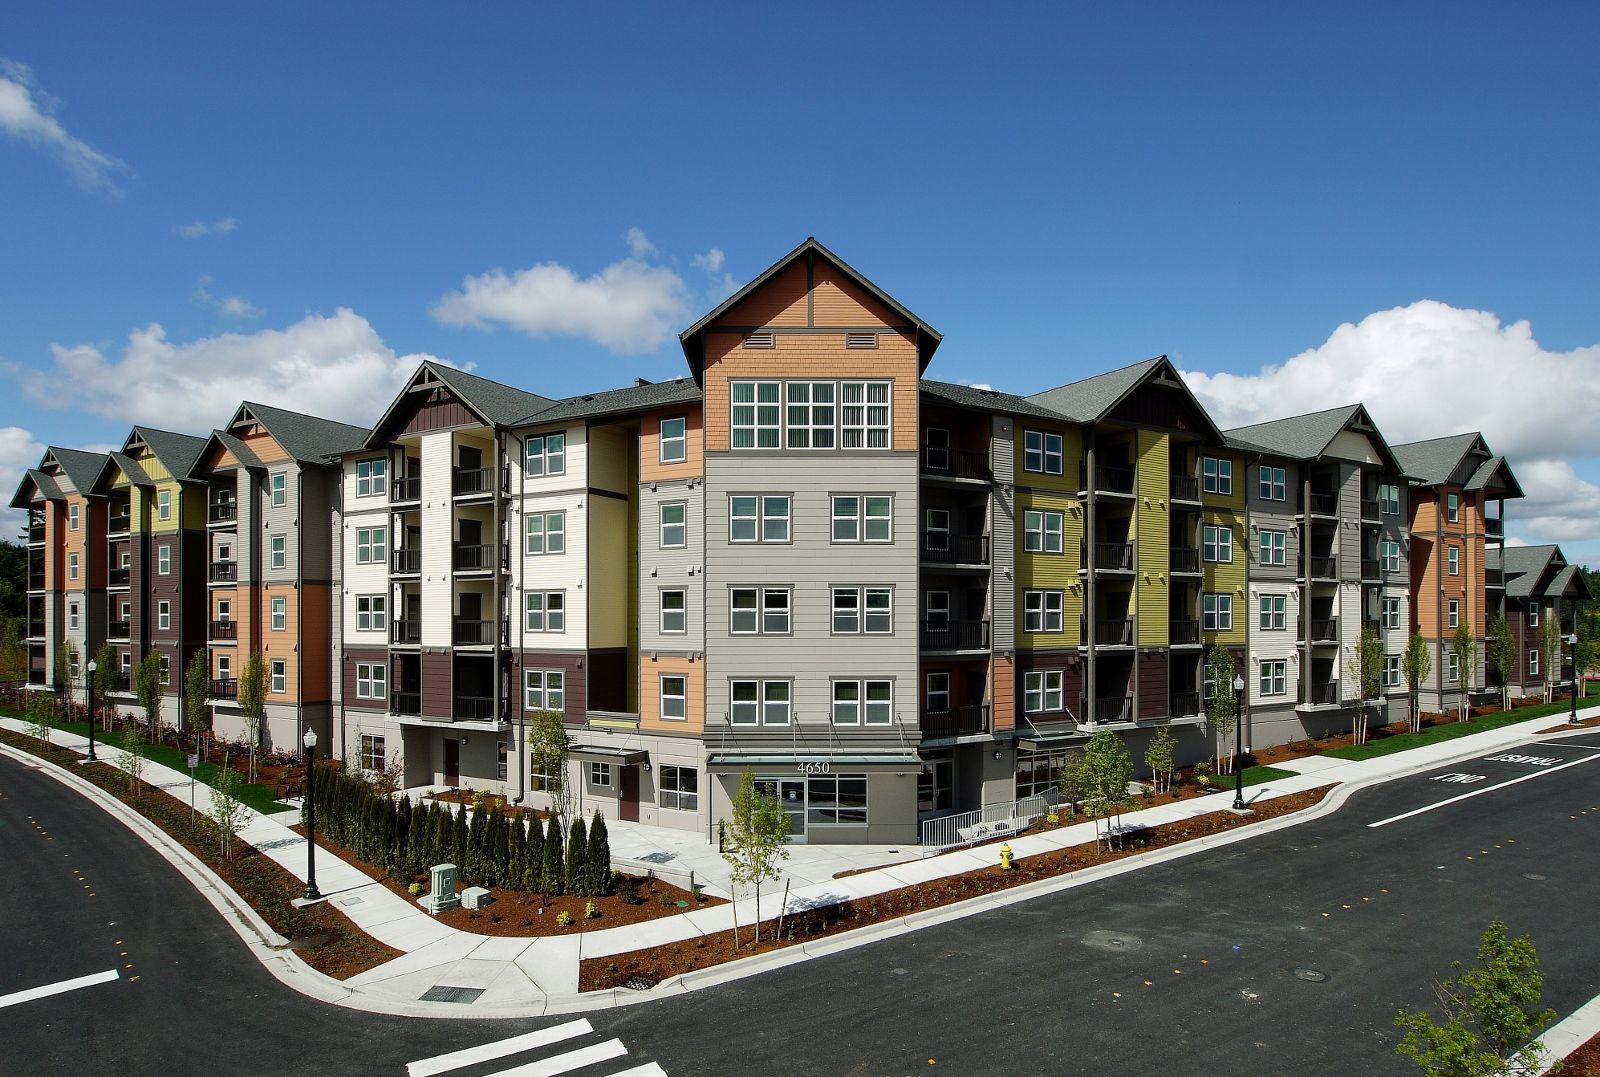 Bay Vista Is Kitsap County S Largest Affordable Housing Complex In Recent Memory Created By Bremerton Affordable Rentals Affordable Housing Apartment Building